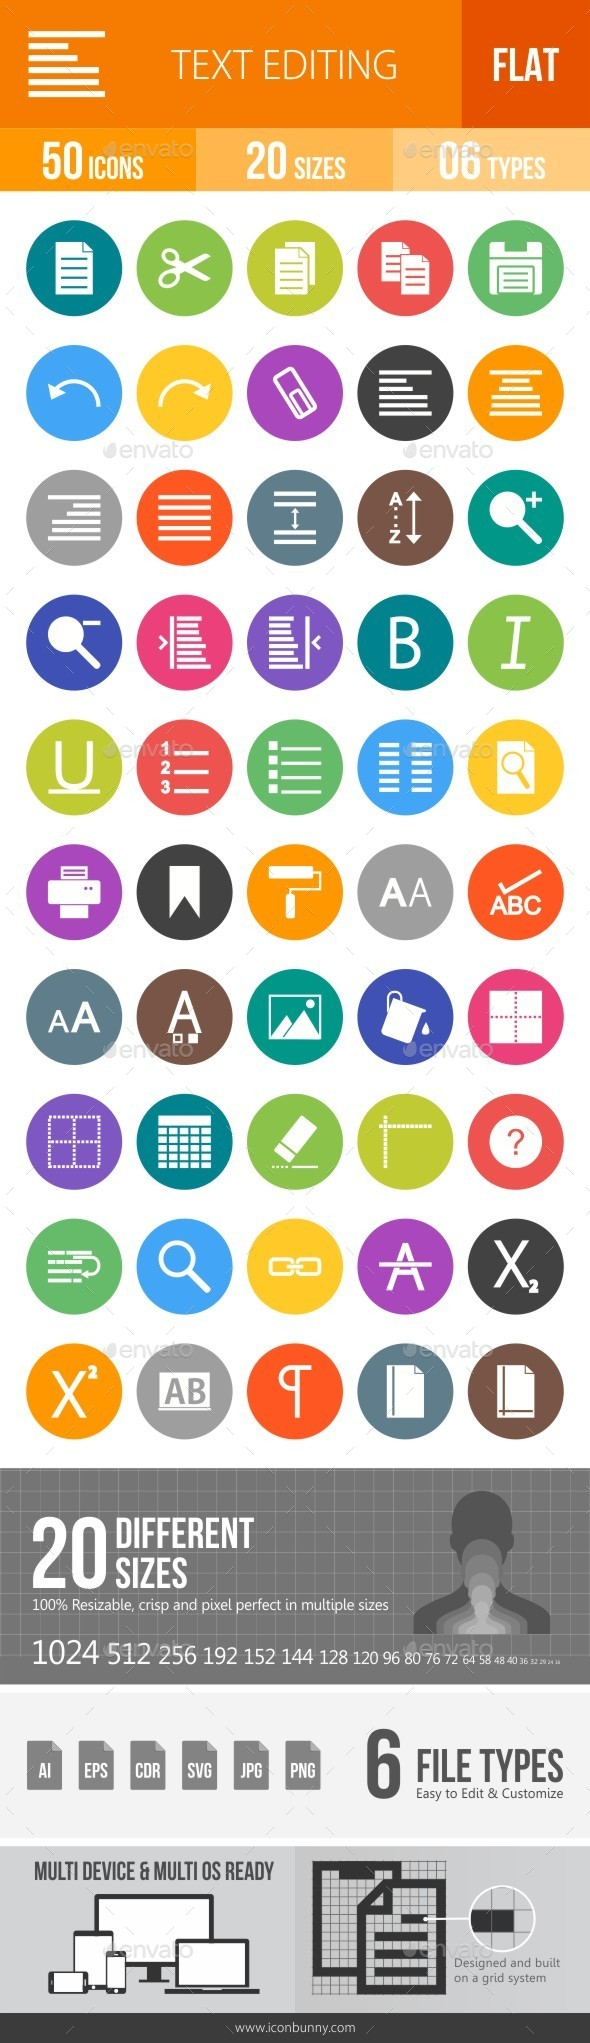 Text Editing Flat Round Icons - Icons